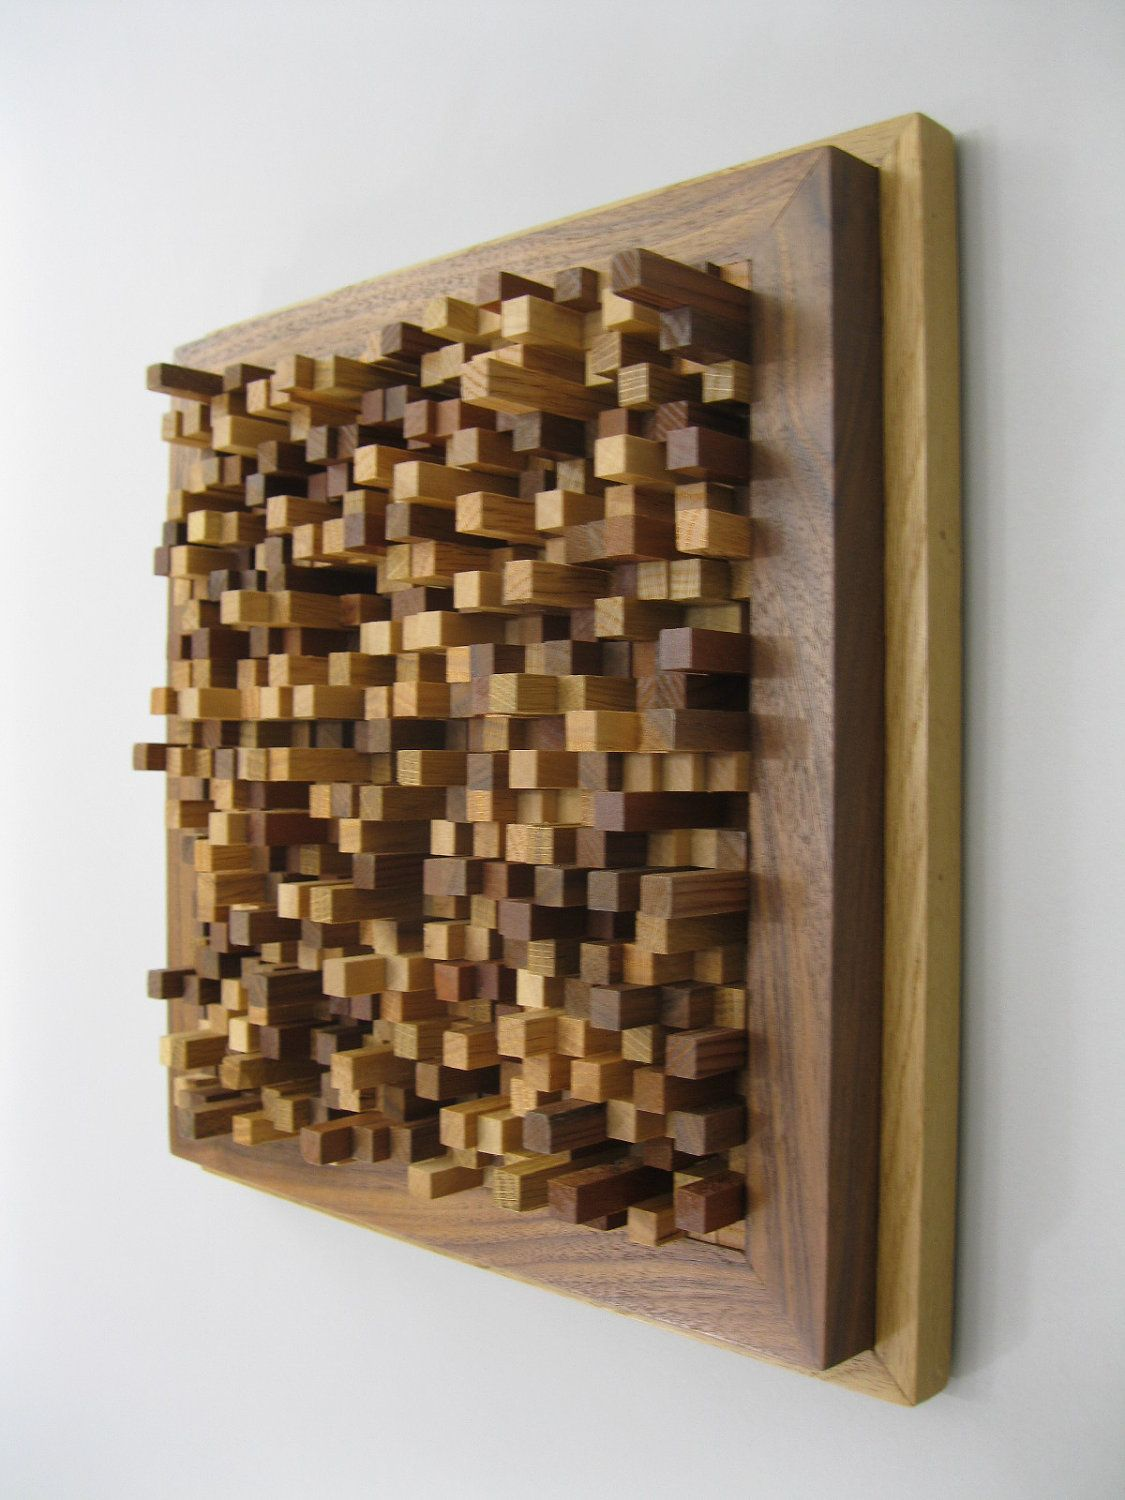 Modern Wood Wall Hanging Sculpture 15% Off at Checkout 187.00 Check Out The  End of